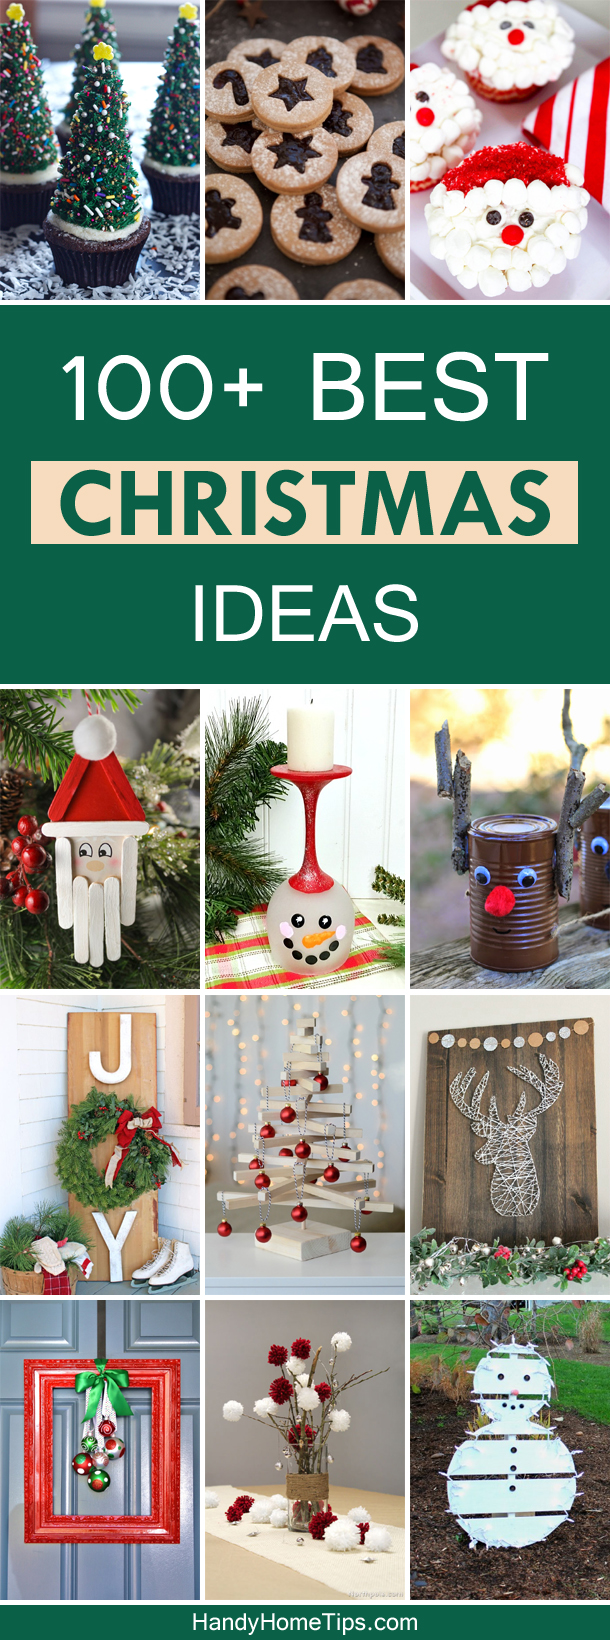 100+ Best Christmas Ideas – Gifts, Recipes and Decor